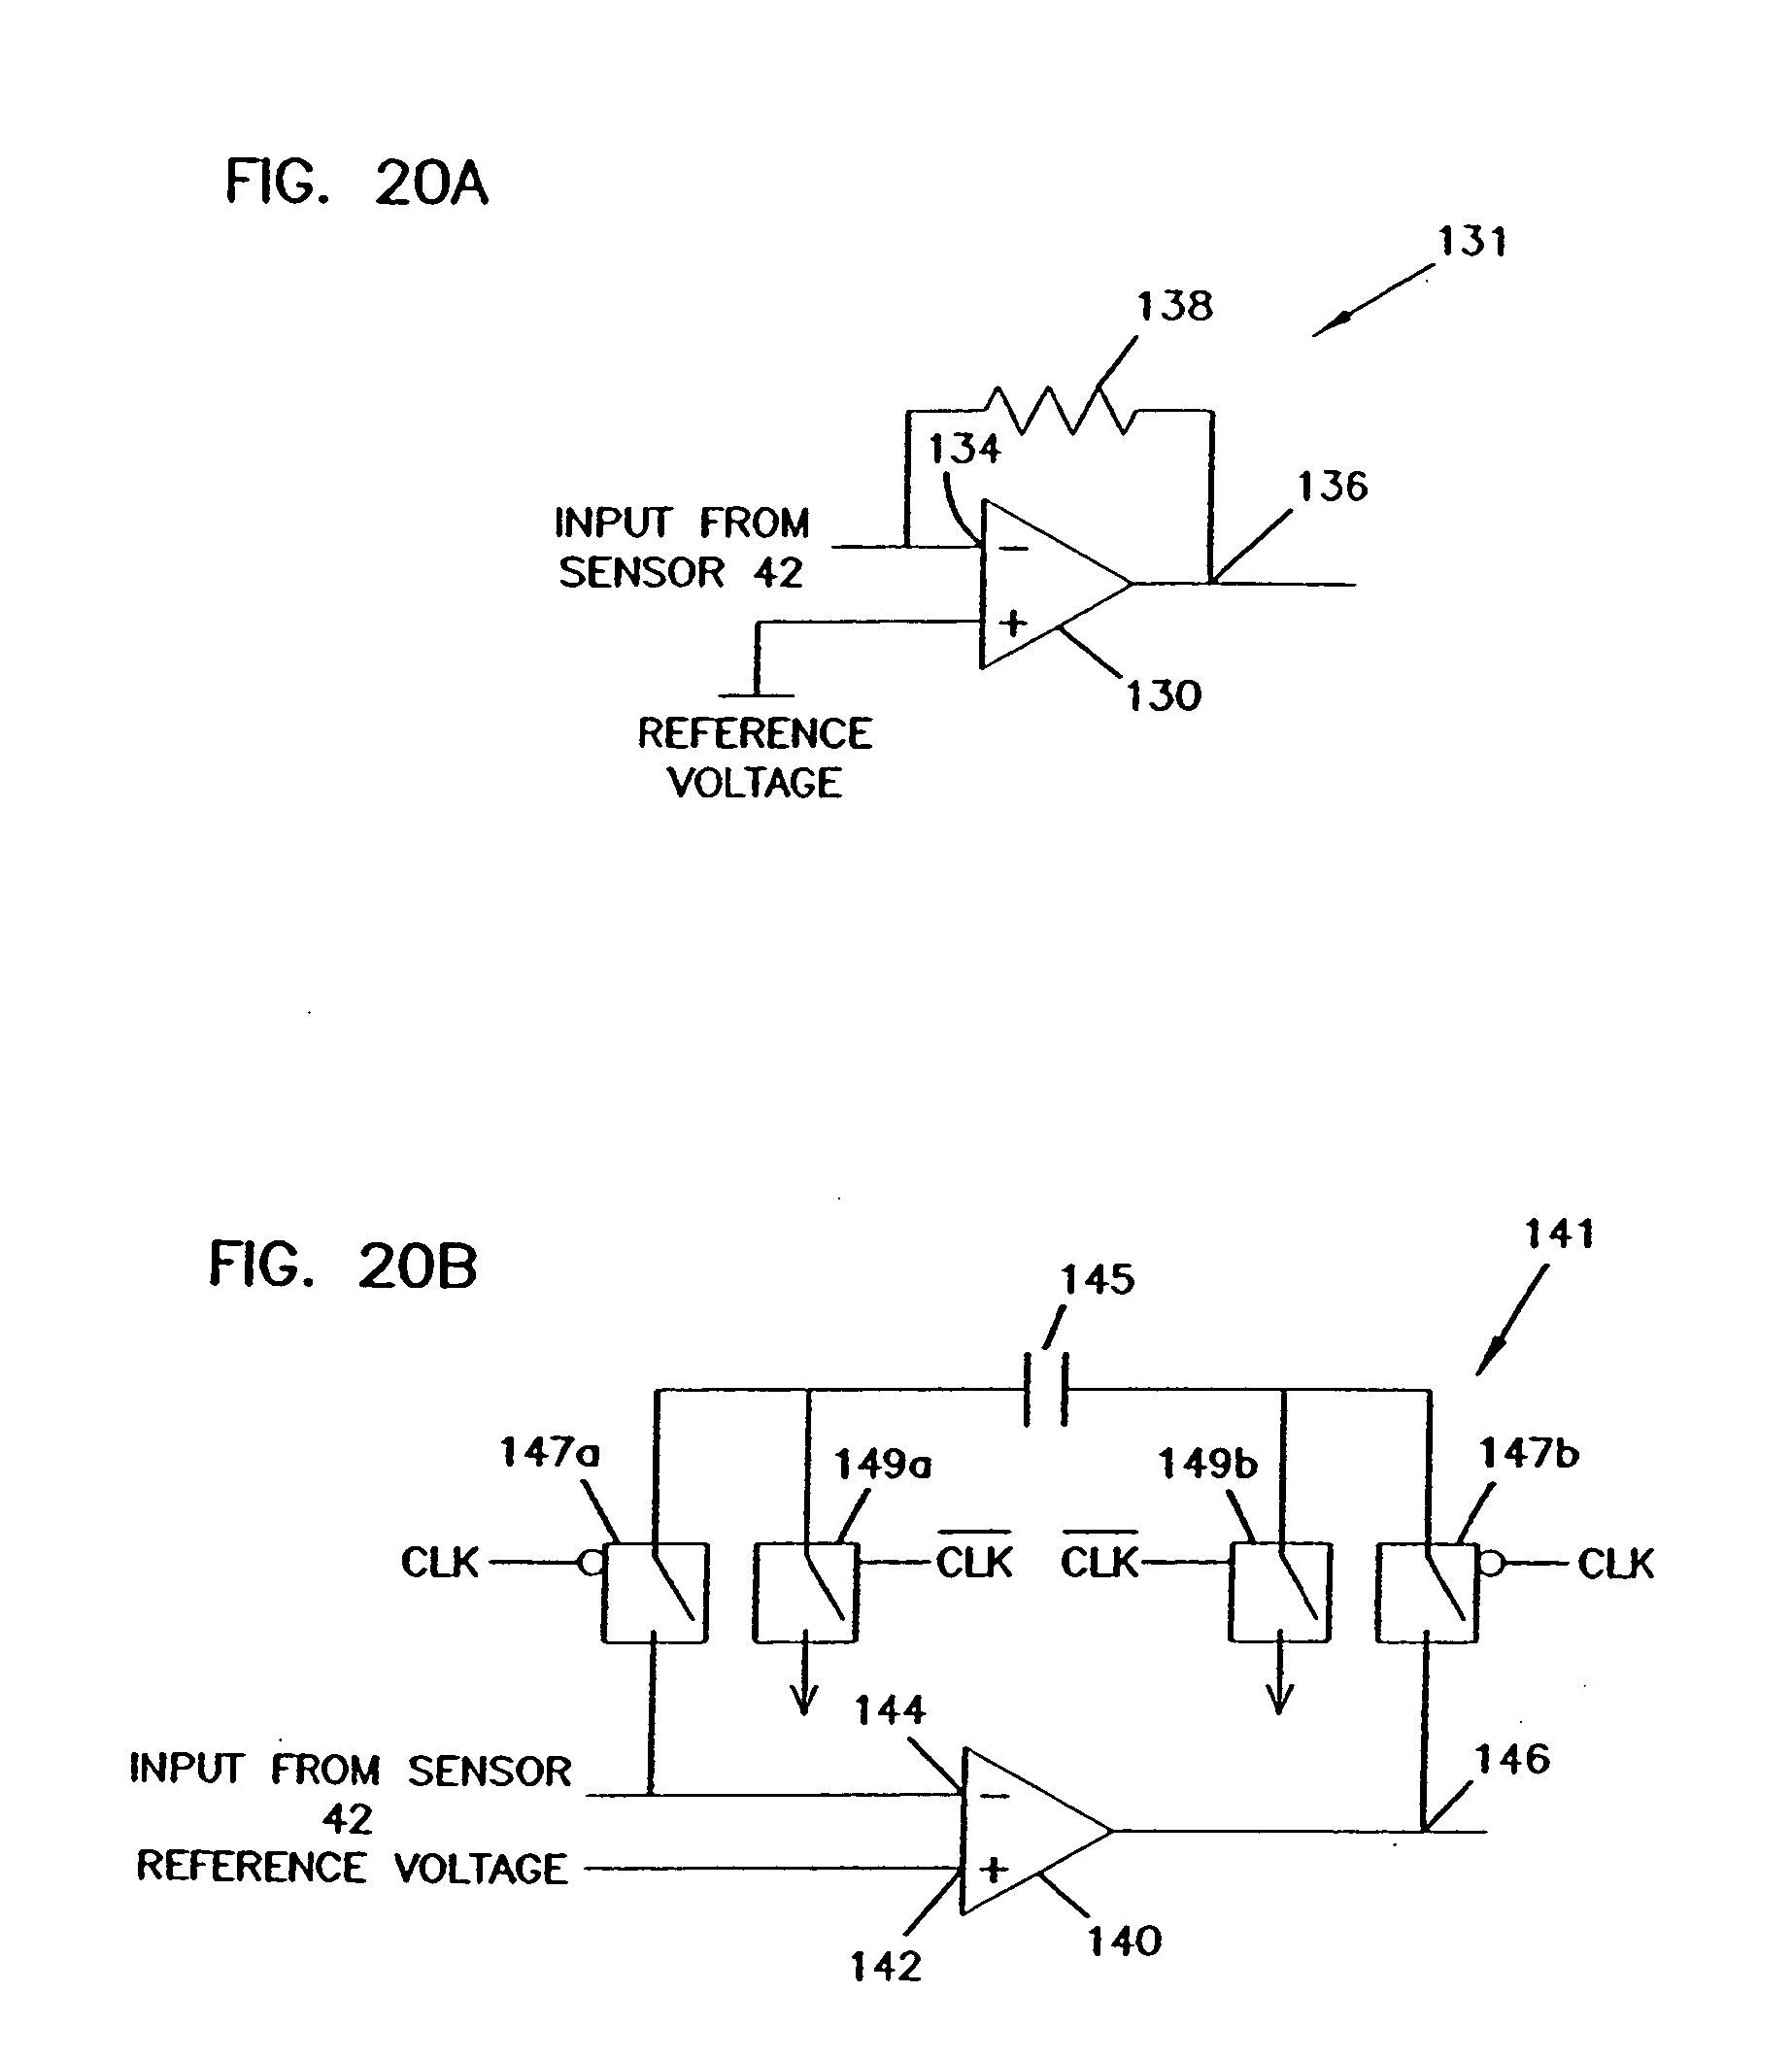 Us20120238833a1 Analyte Monitoring Device And Methods Of Use Protection Circuit Module Pcb For 37v Liion Battery 20a Limit Google Patents